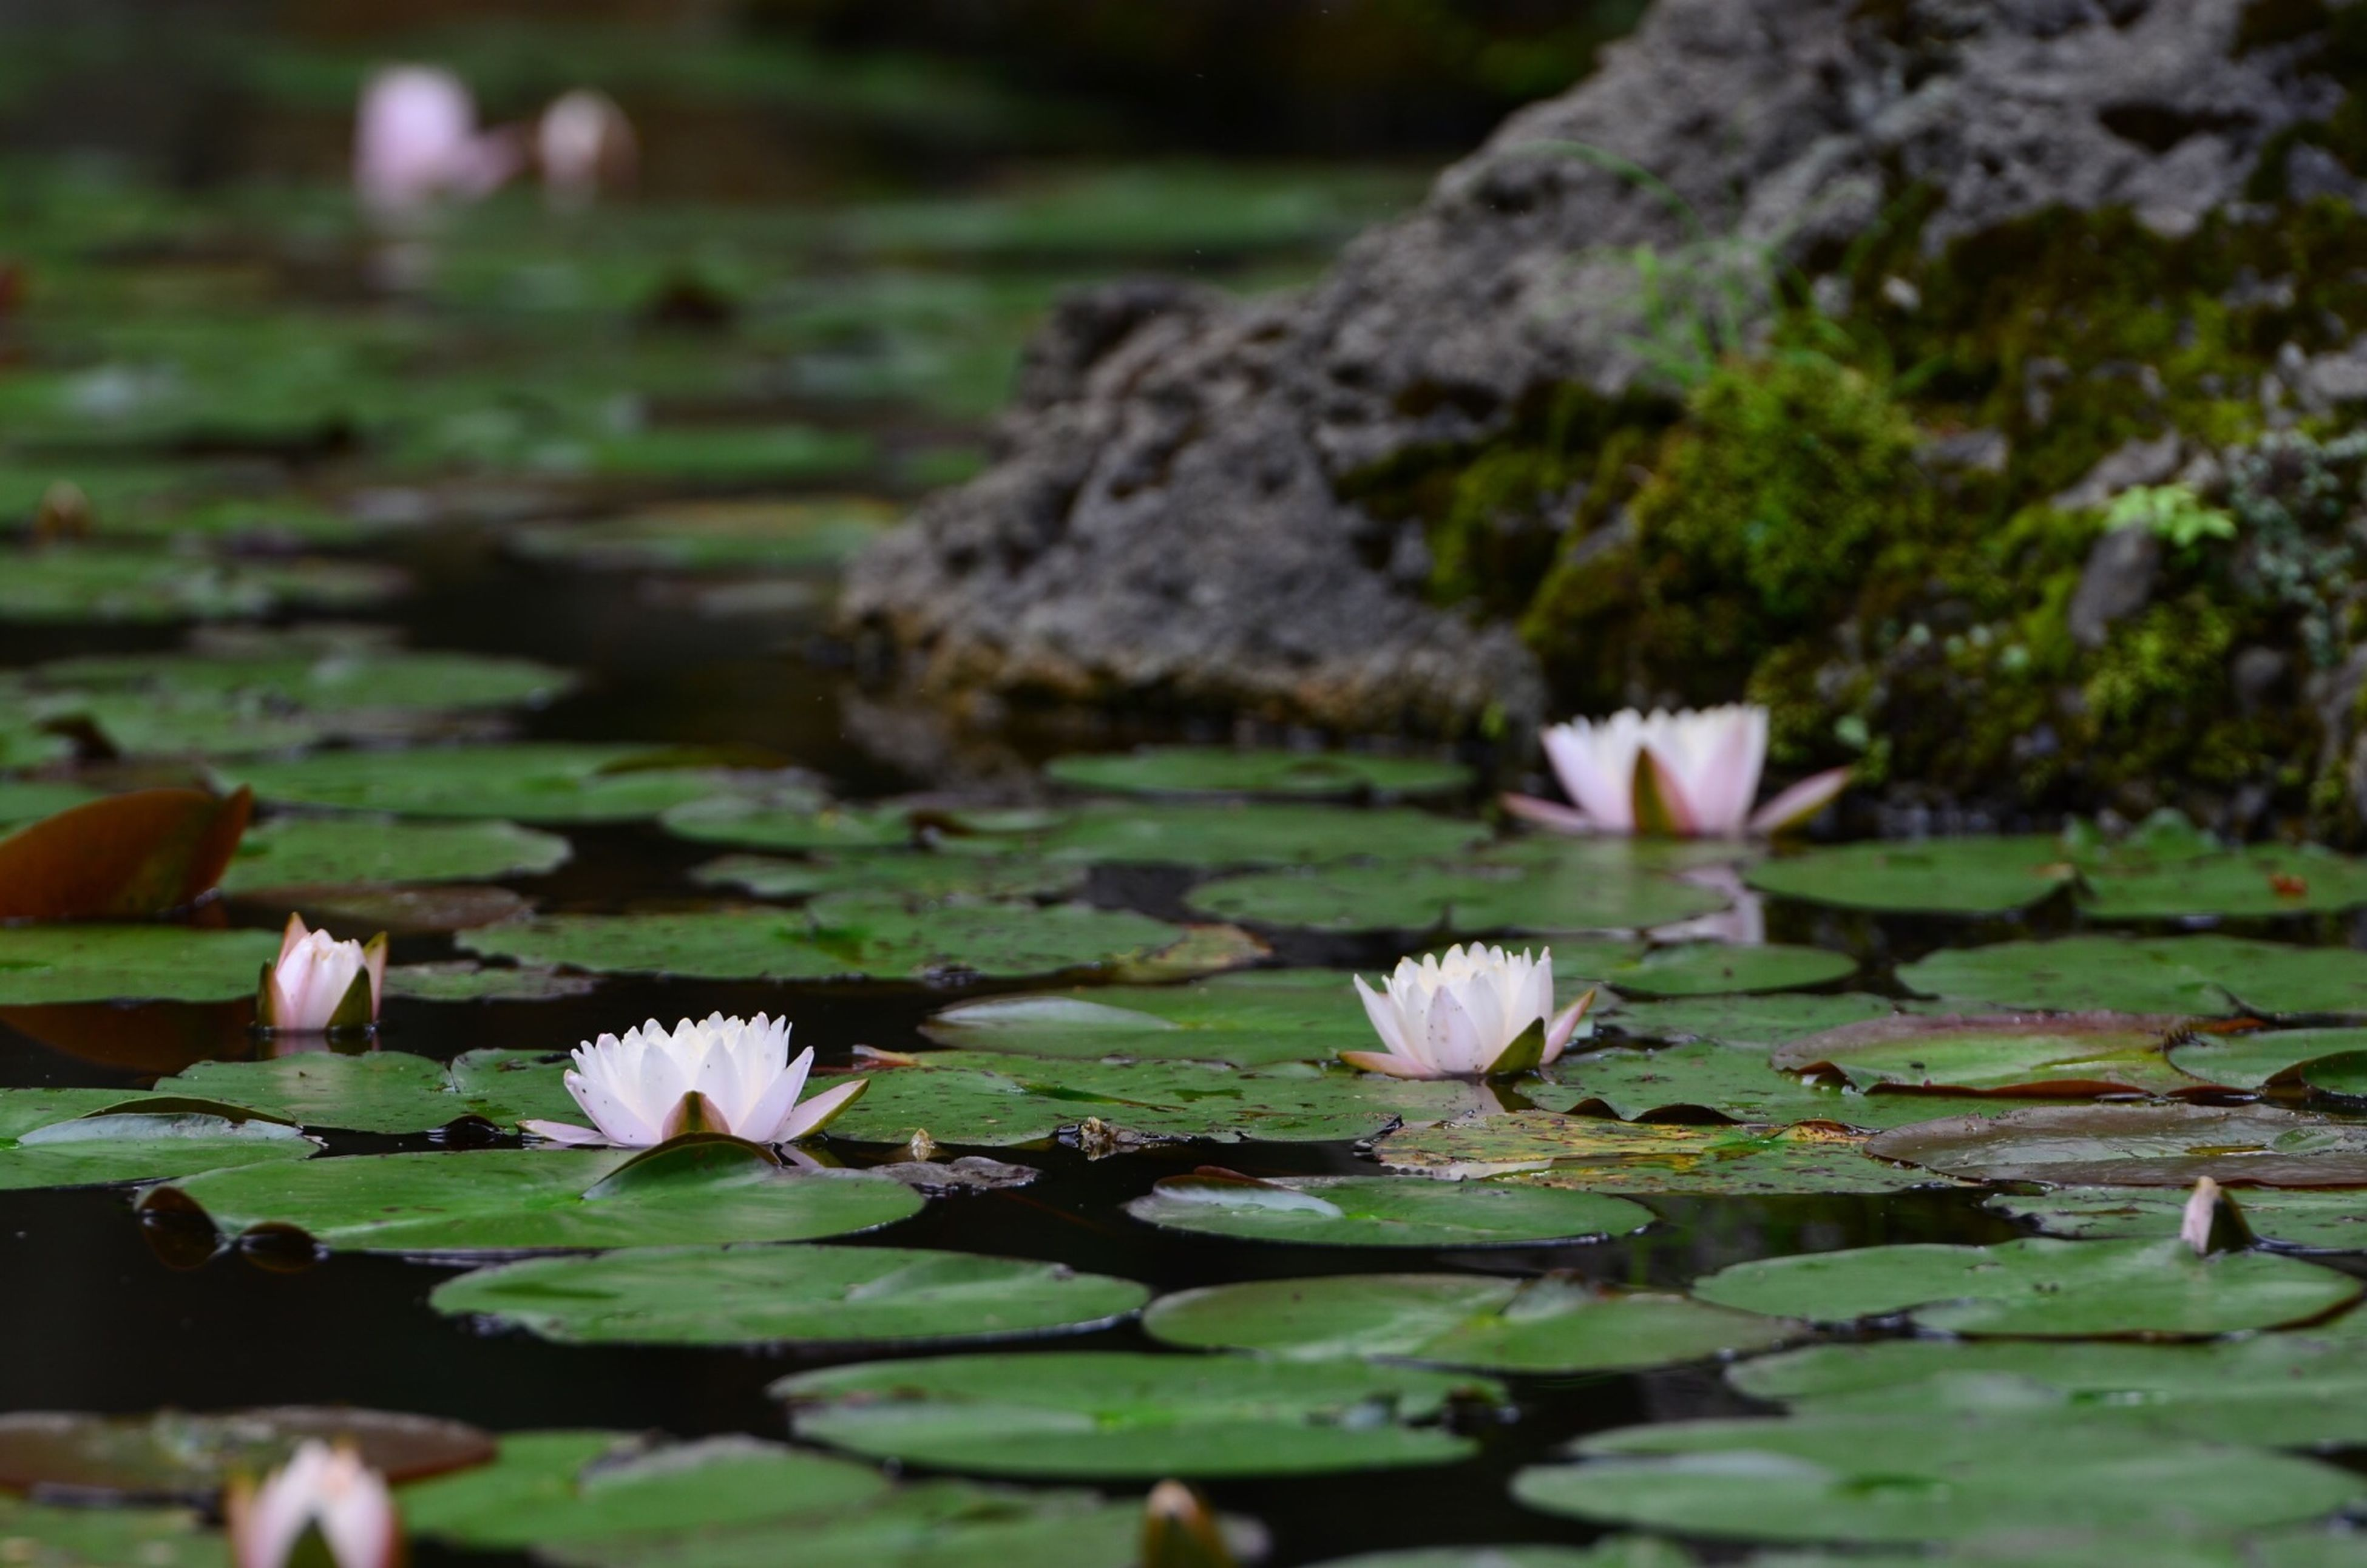 flower, petal, fragility, freshness, growth, beauty in nature, flower head, water lily, nature, pond, plant, blooming, water, leaf, white color, lotus water lily, close-up, focus on foreground, in bloom, blossom